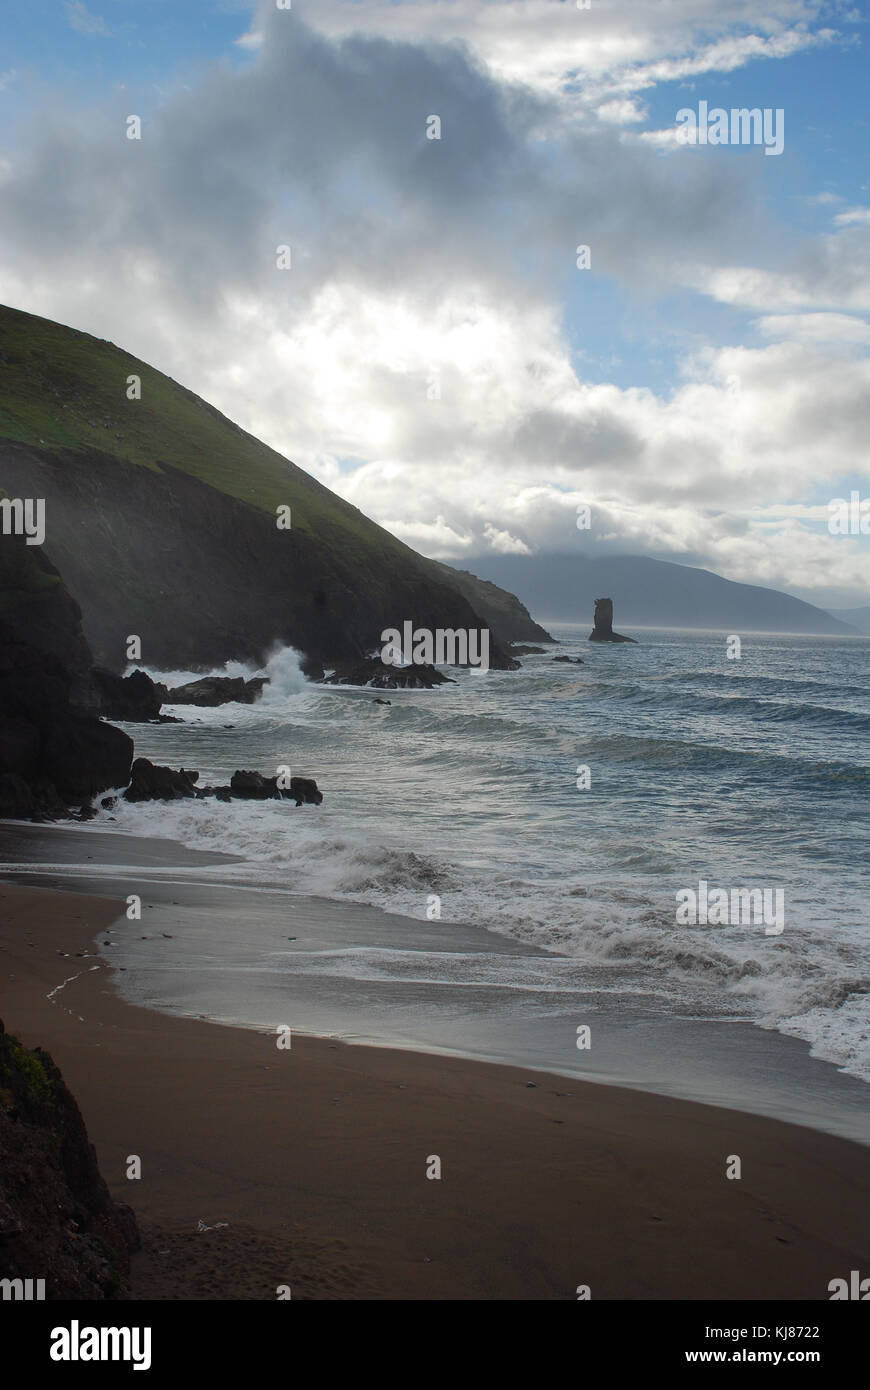 Ireland's Dingle Peninsula - Stock Image